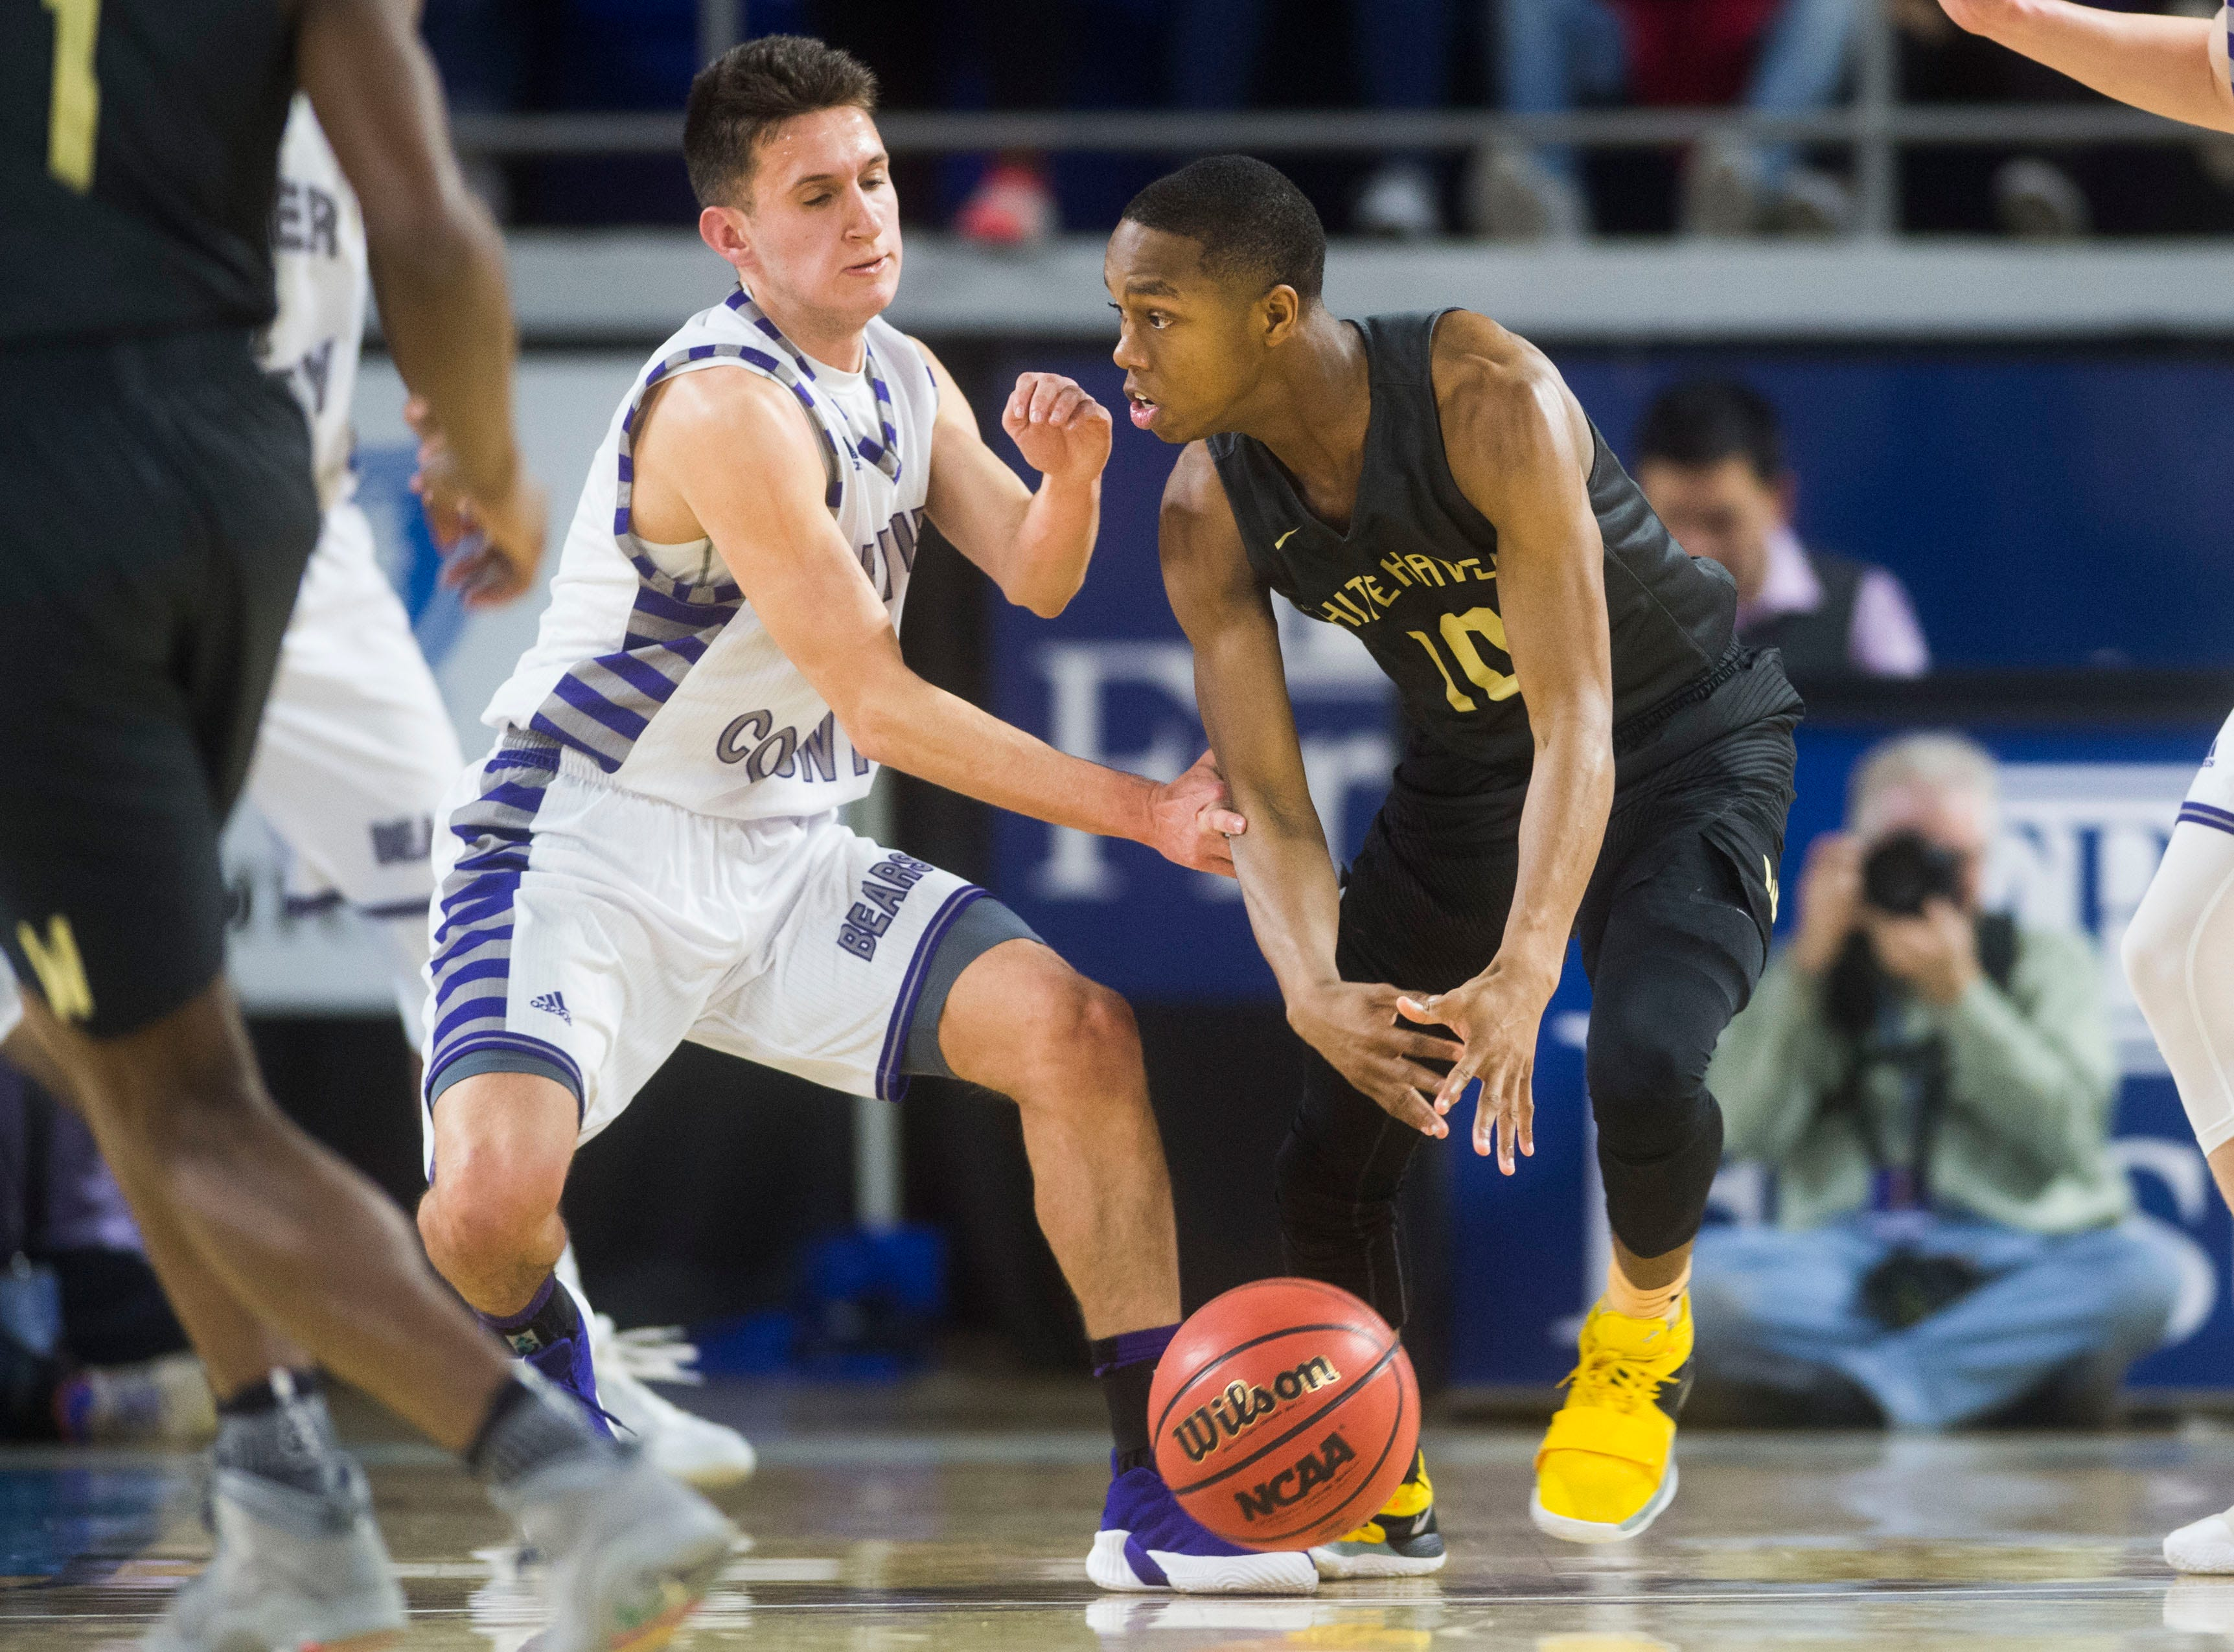 Whitehaven's Antwarn Smith (10) dribbles the ball down the court during a TSSAA AAA state quarterfinal game between Sevier County and Whitehaven at the Murphy Center in Murfreesboro, Wednesday, March 13, 2019.